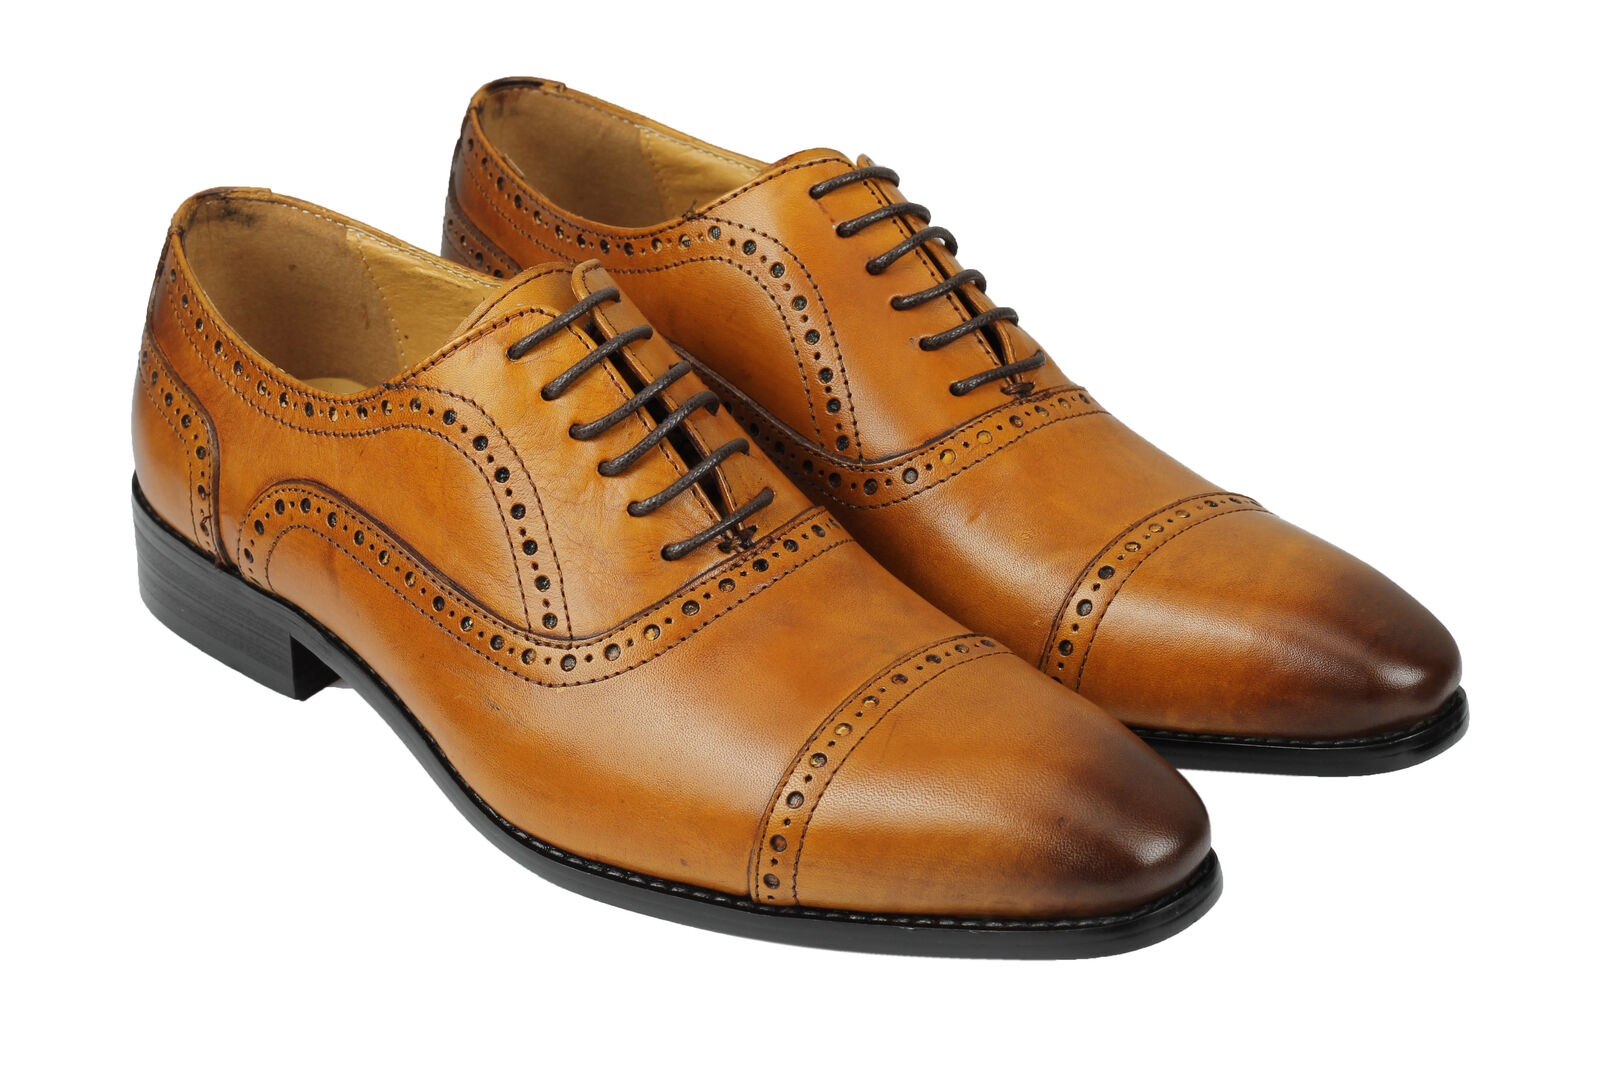 Herren Classic Genuine Real Leder Tan Braun Retro Formal Brogue Lace up Schuhes deda7a